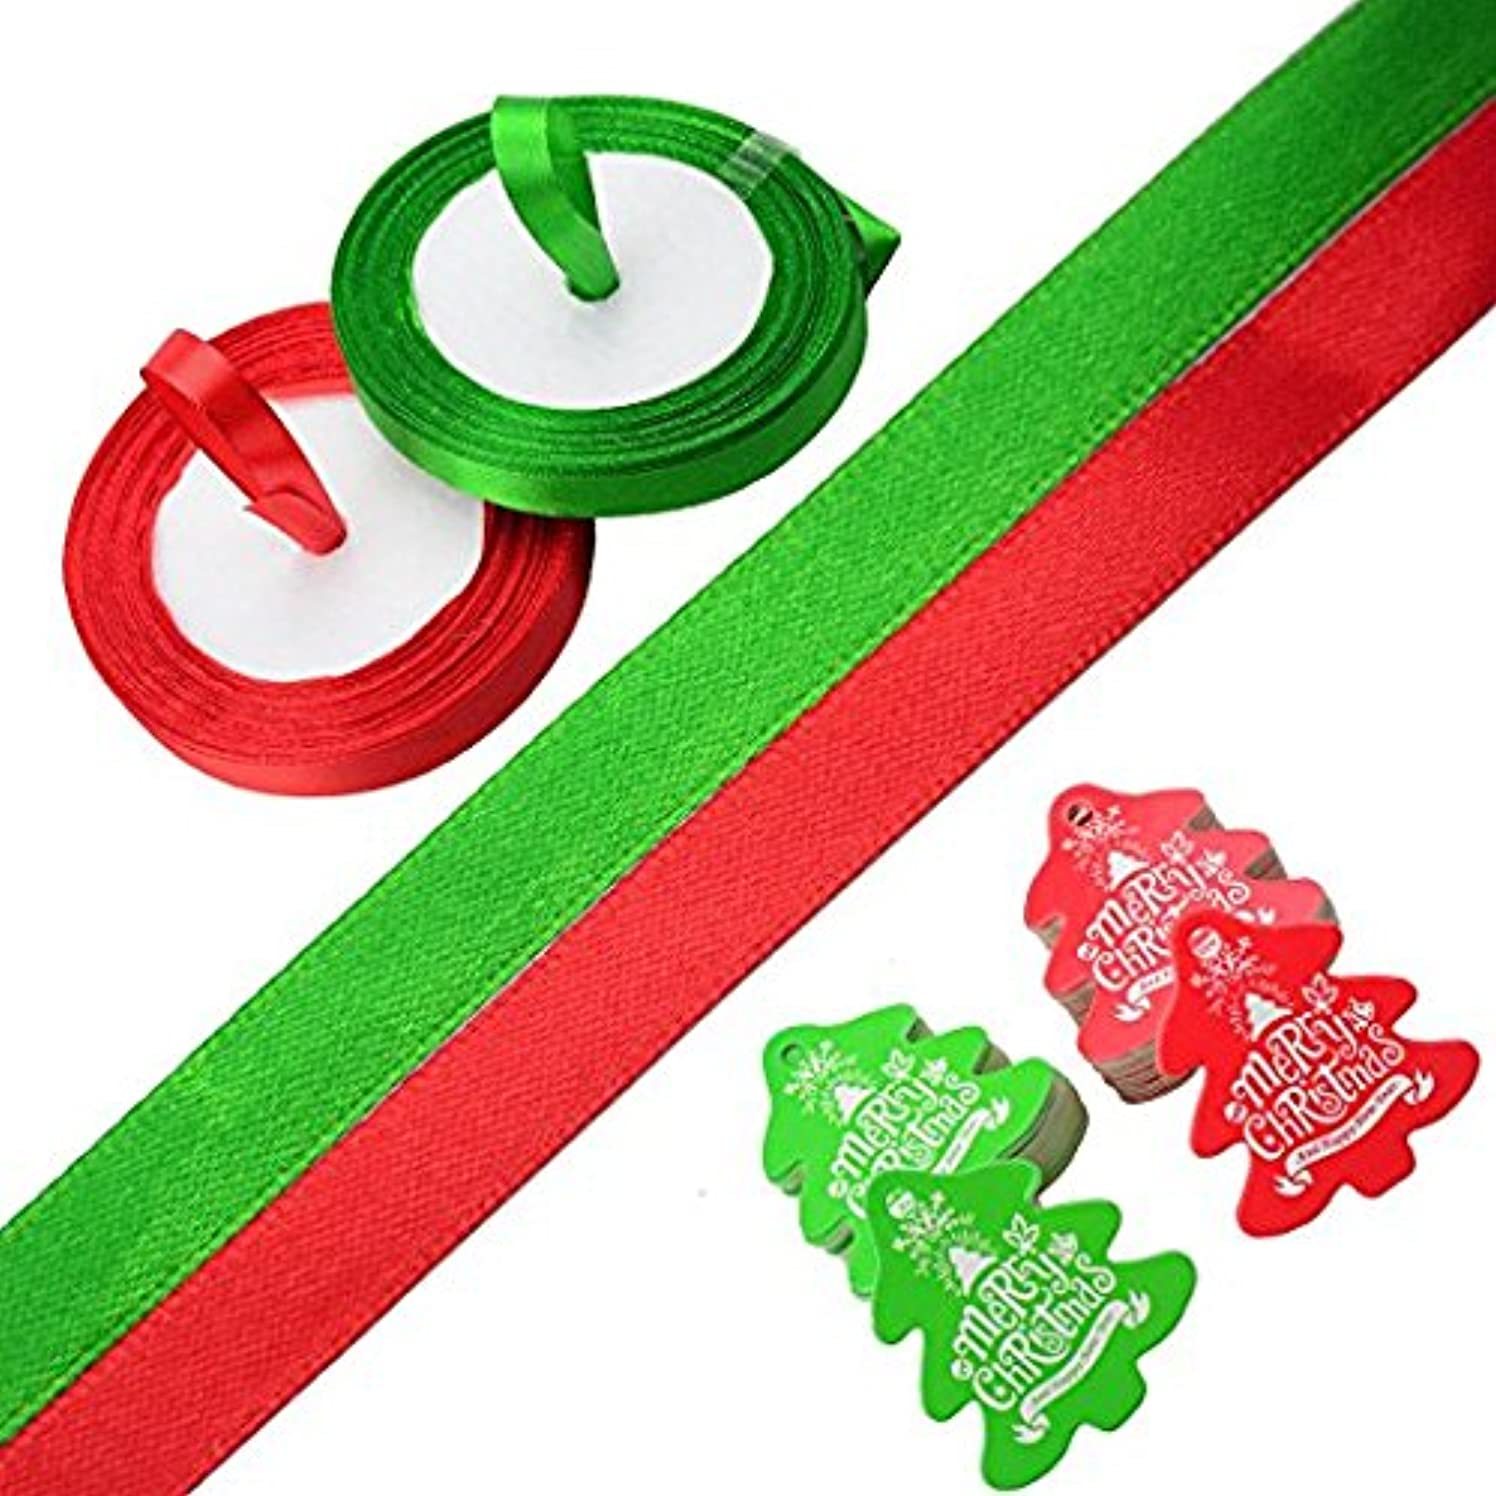 Makhry 100 Pack of Red/Green Xmas Tree Gift Tags with Silky Ribbon for Christmas,Thanksgiving Gift Wrapping Tags Cookie Bakery Candy Biscuit Roasting Gift Tags (Red&Green)